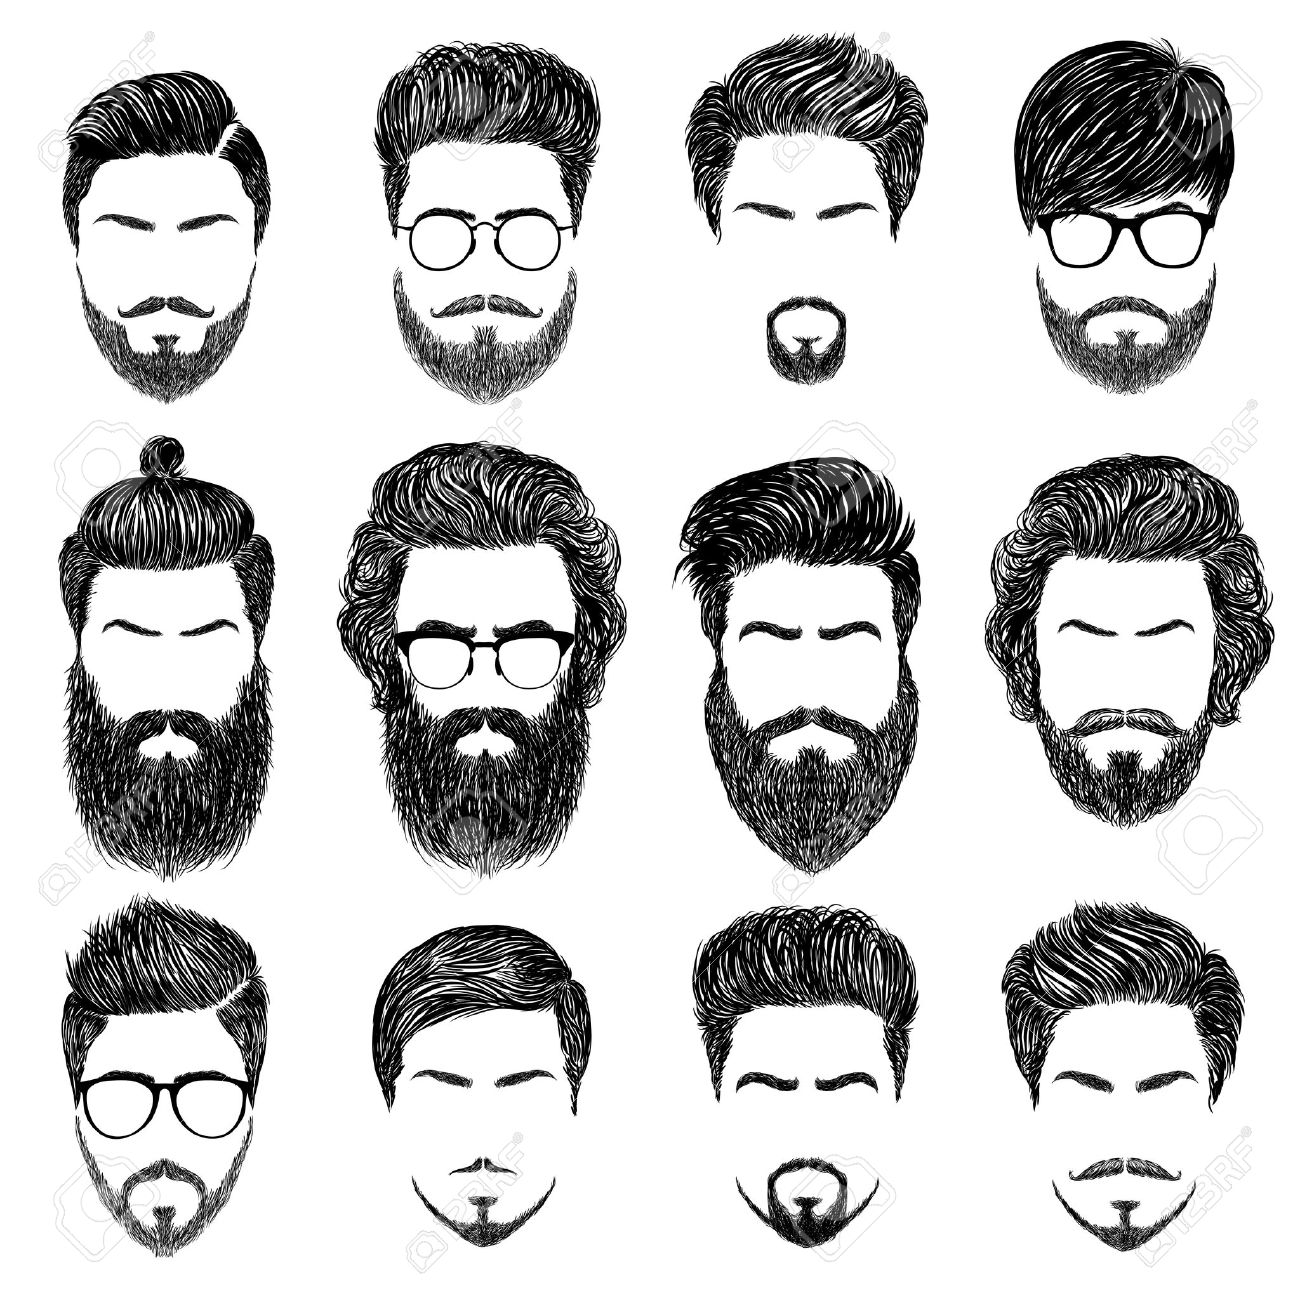 A set of mens hairstyles, beards and mustaches.Gentlmen haircuts and shaves. Digital hand drawn vector illustration. - 51250771